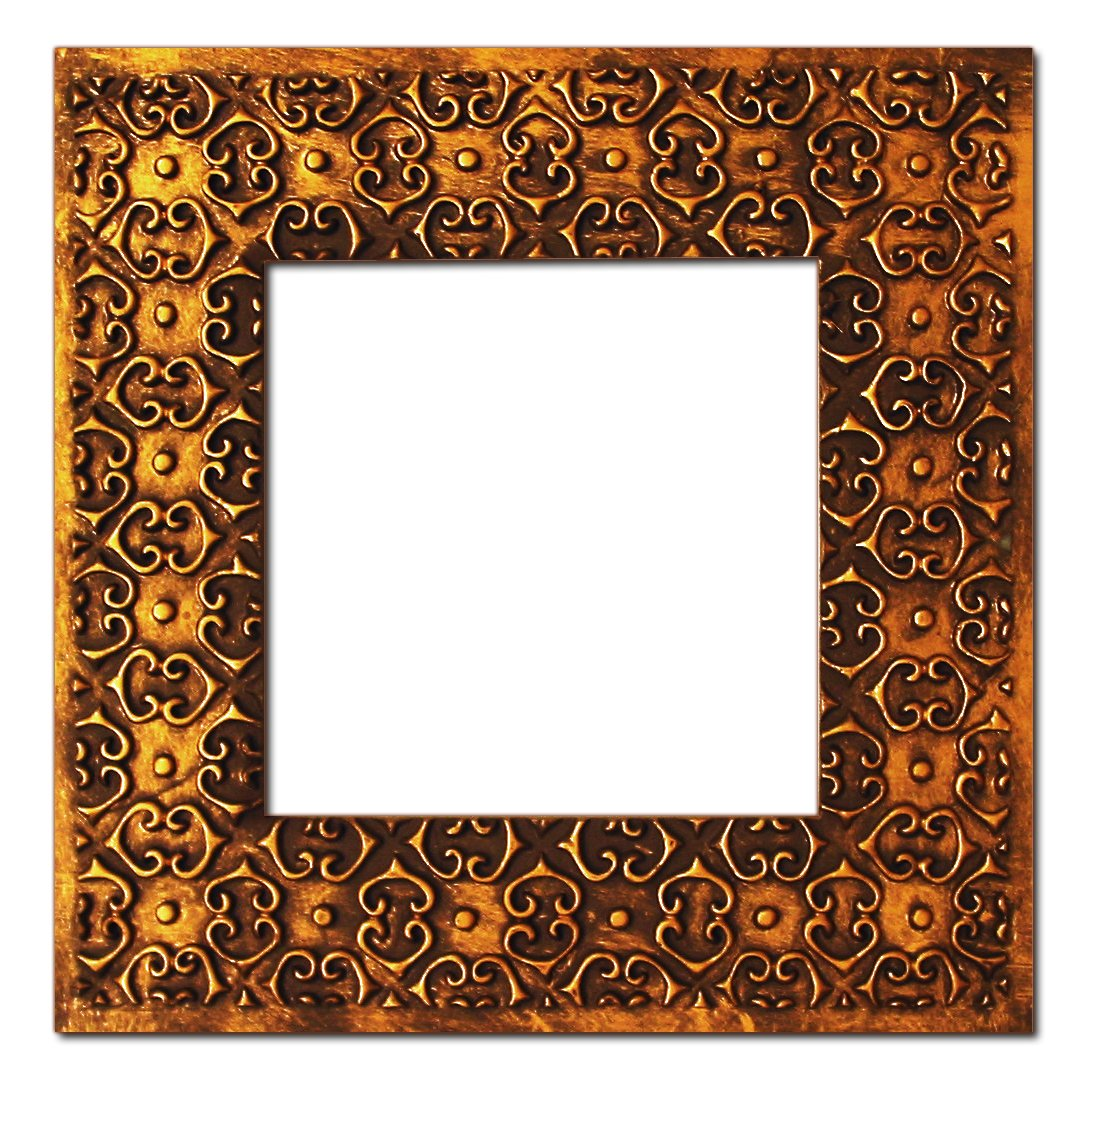 1104x1122 Free Gold Frame Border Images, Pictures, And Royalty Free Stock